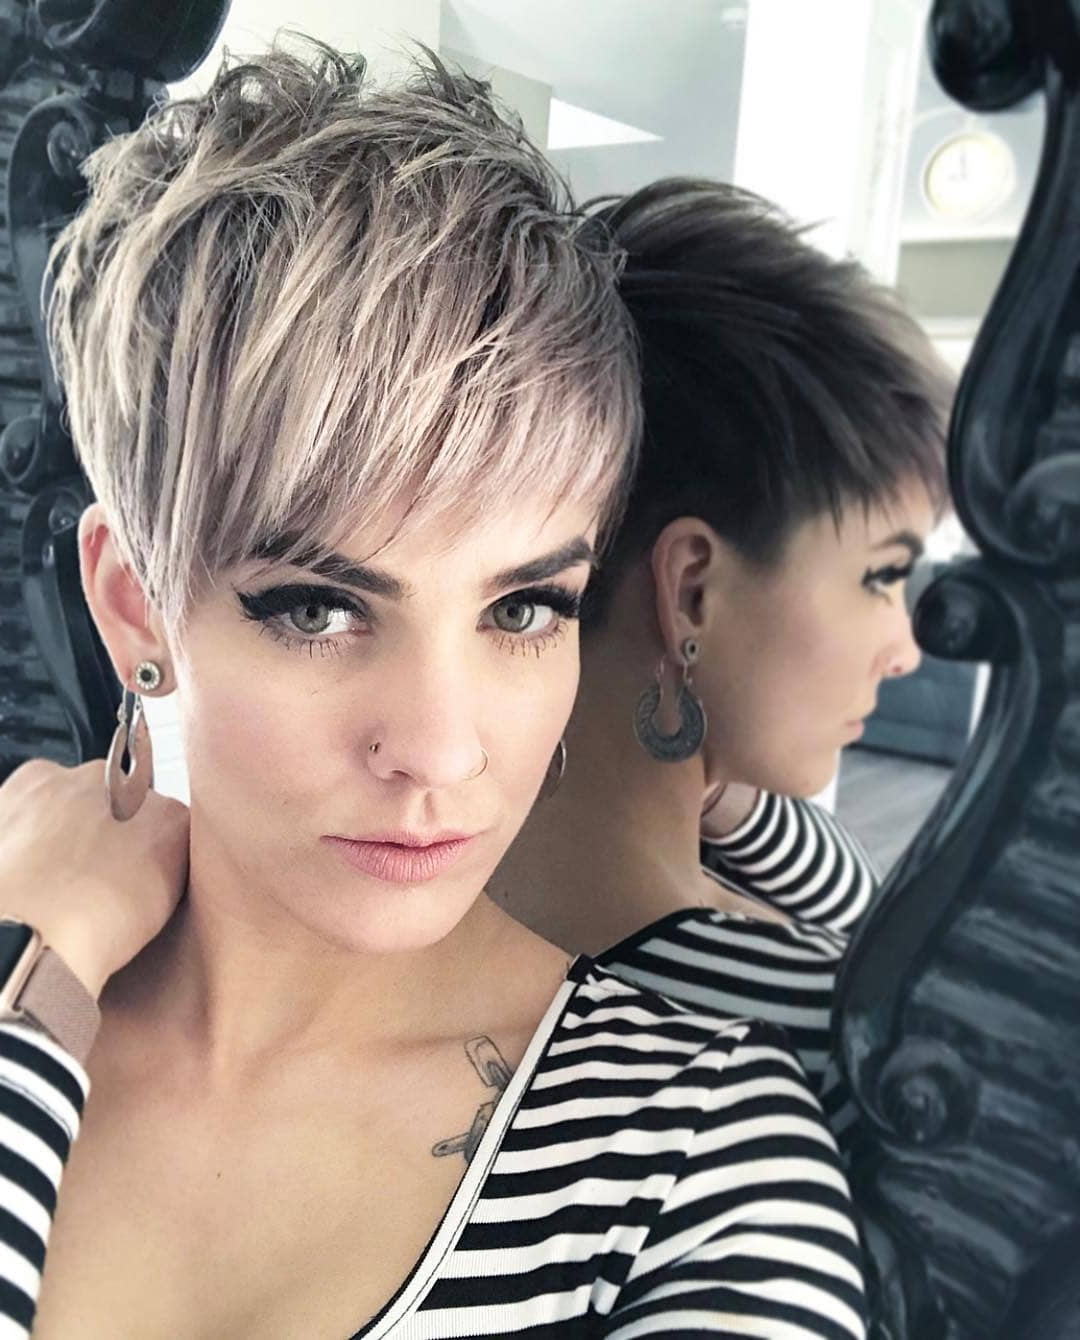 Top 10 Most Flattering Pixie Haircuts For Women, Short Hair Styles 2019 With Pixie Layered Short Haircuts (View 2 of 25)